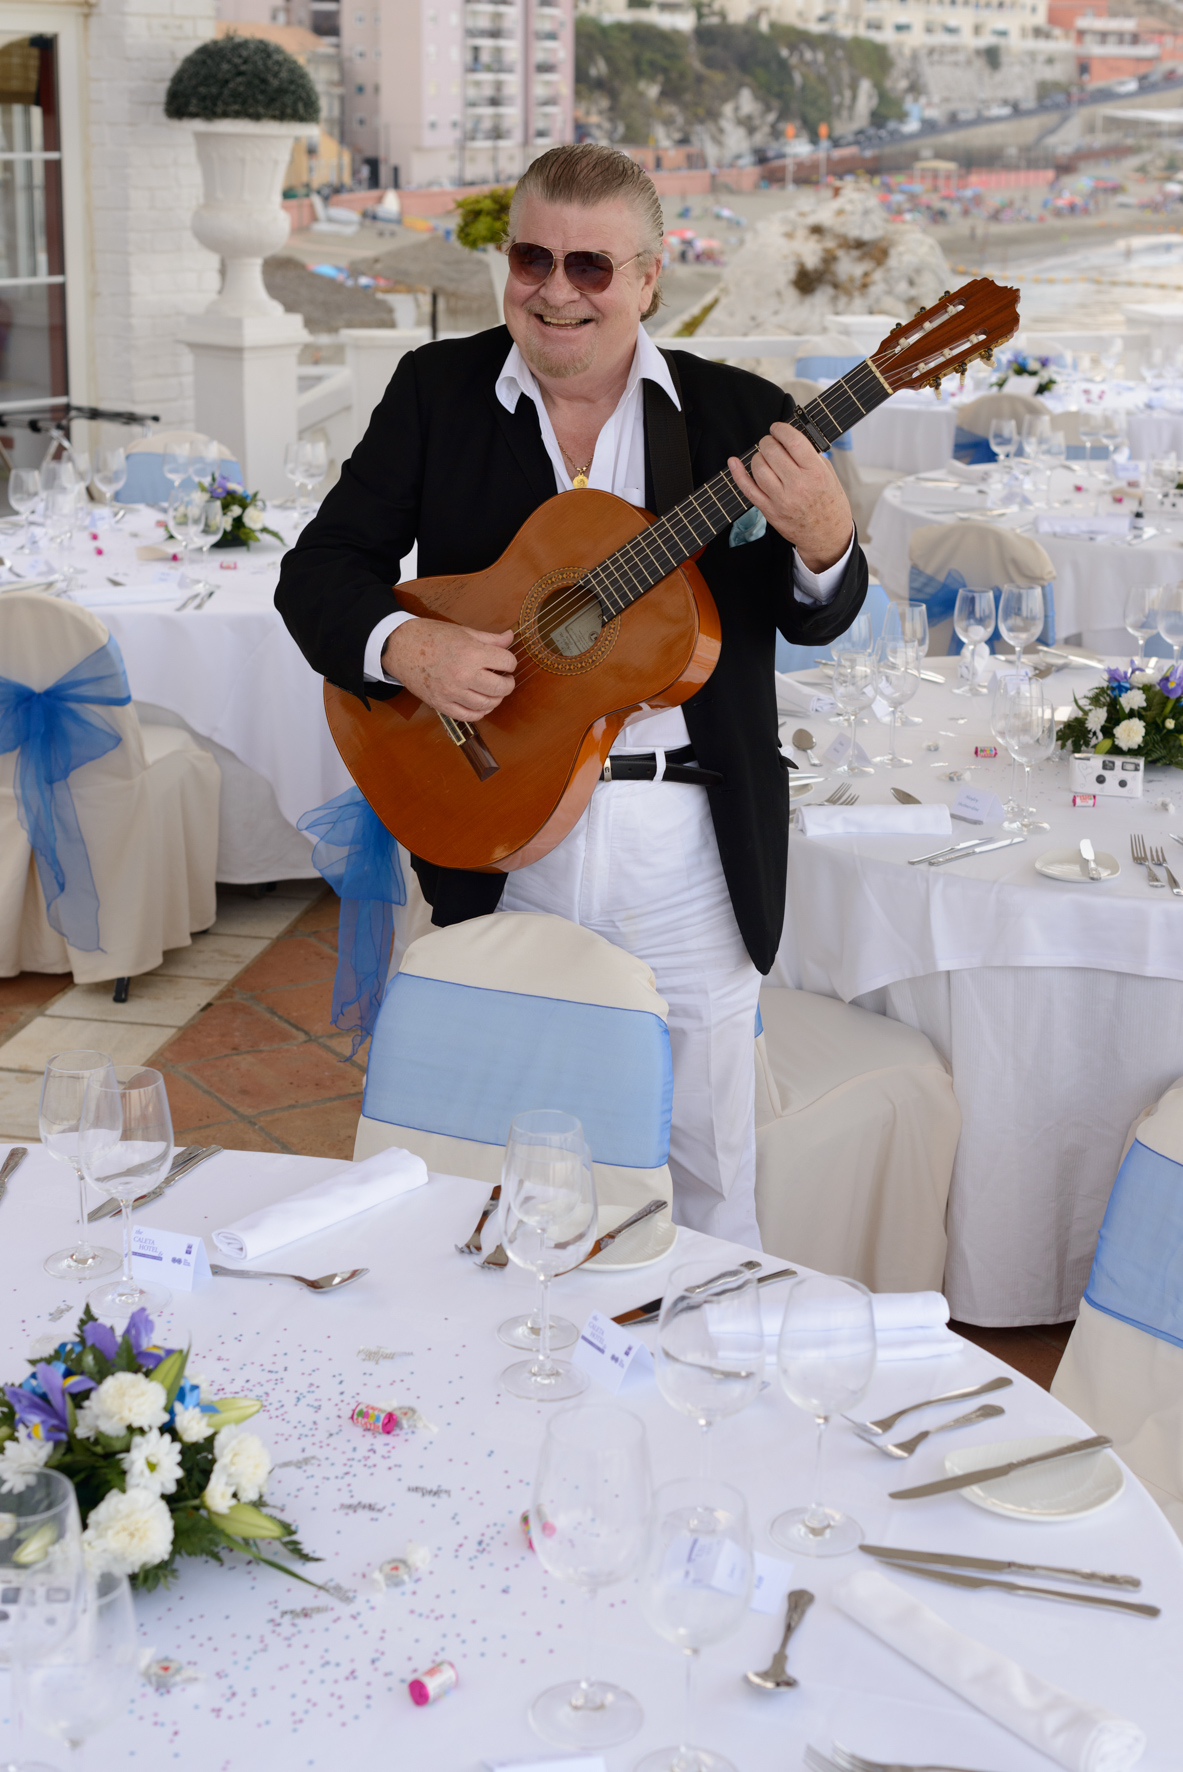 Spanish guitar player Costa del Sol